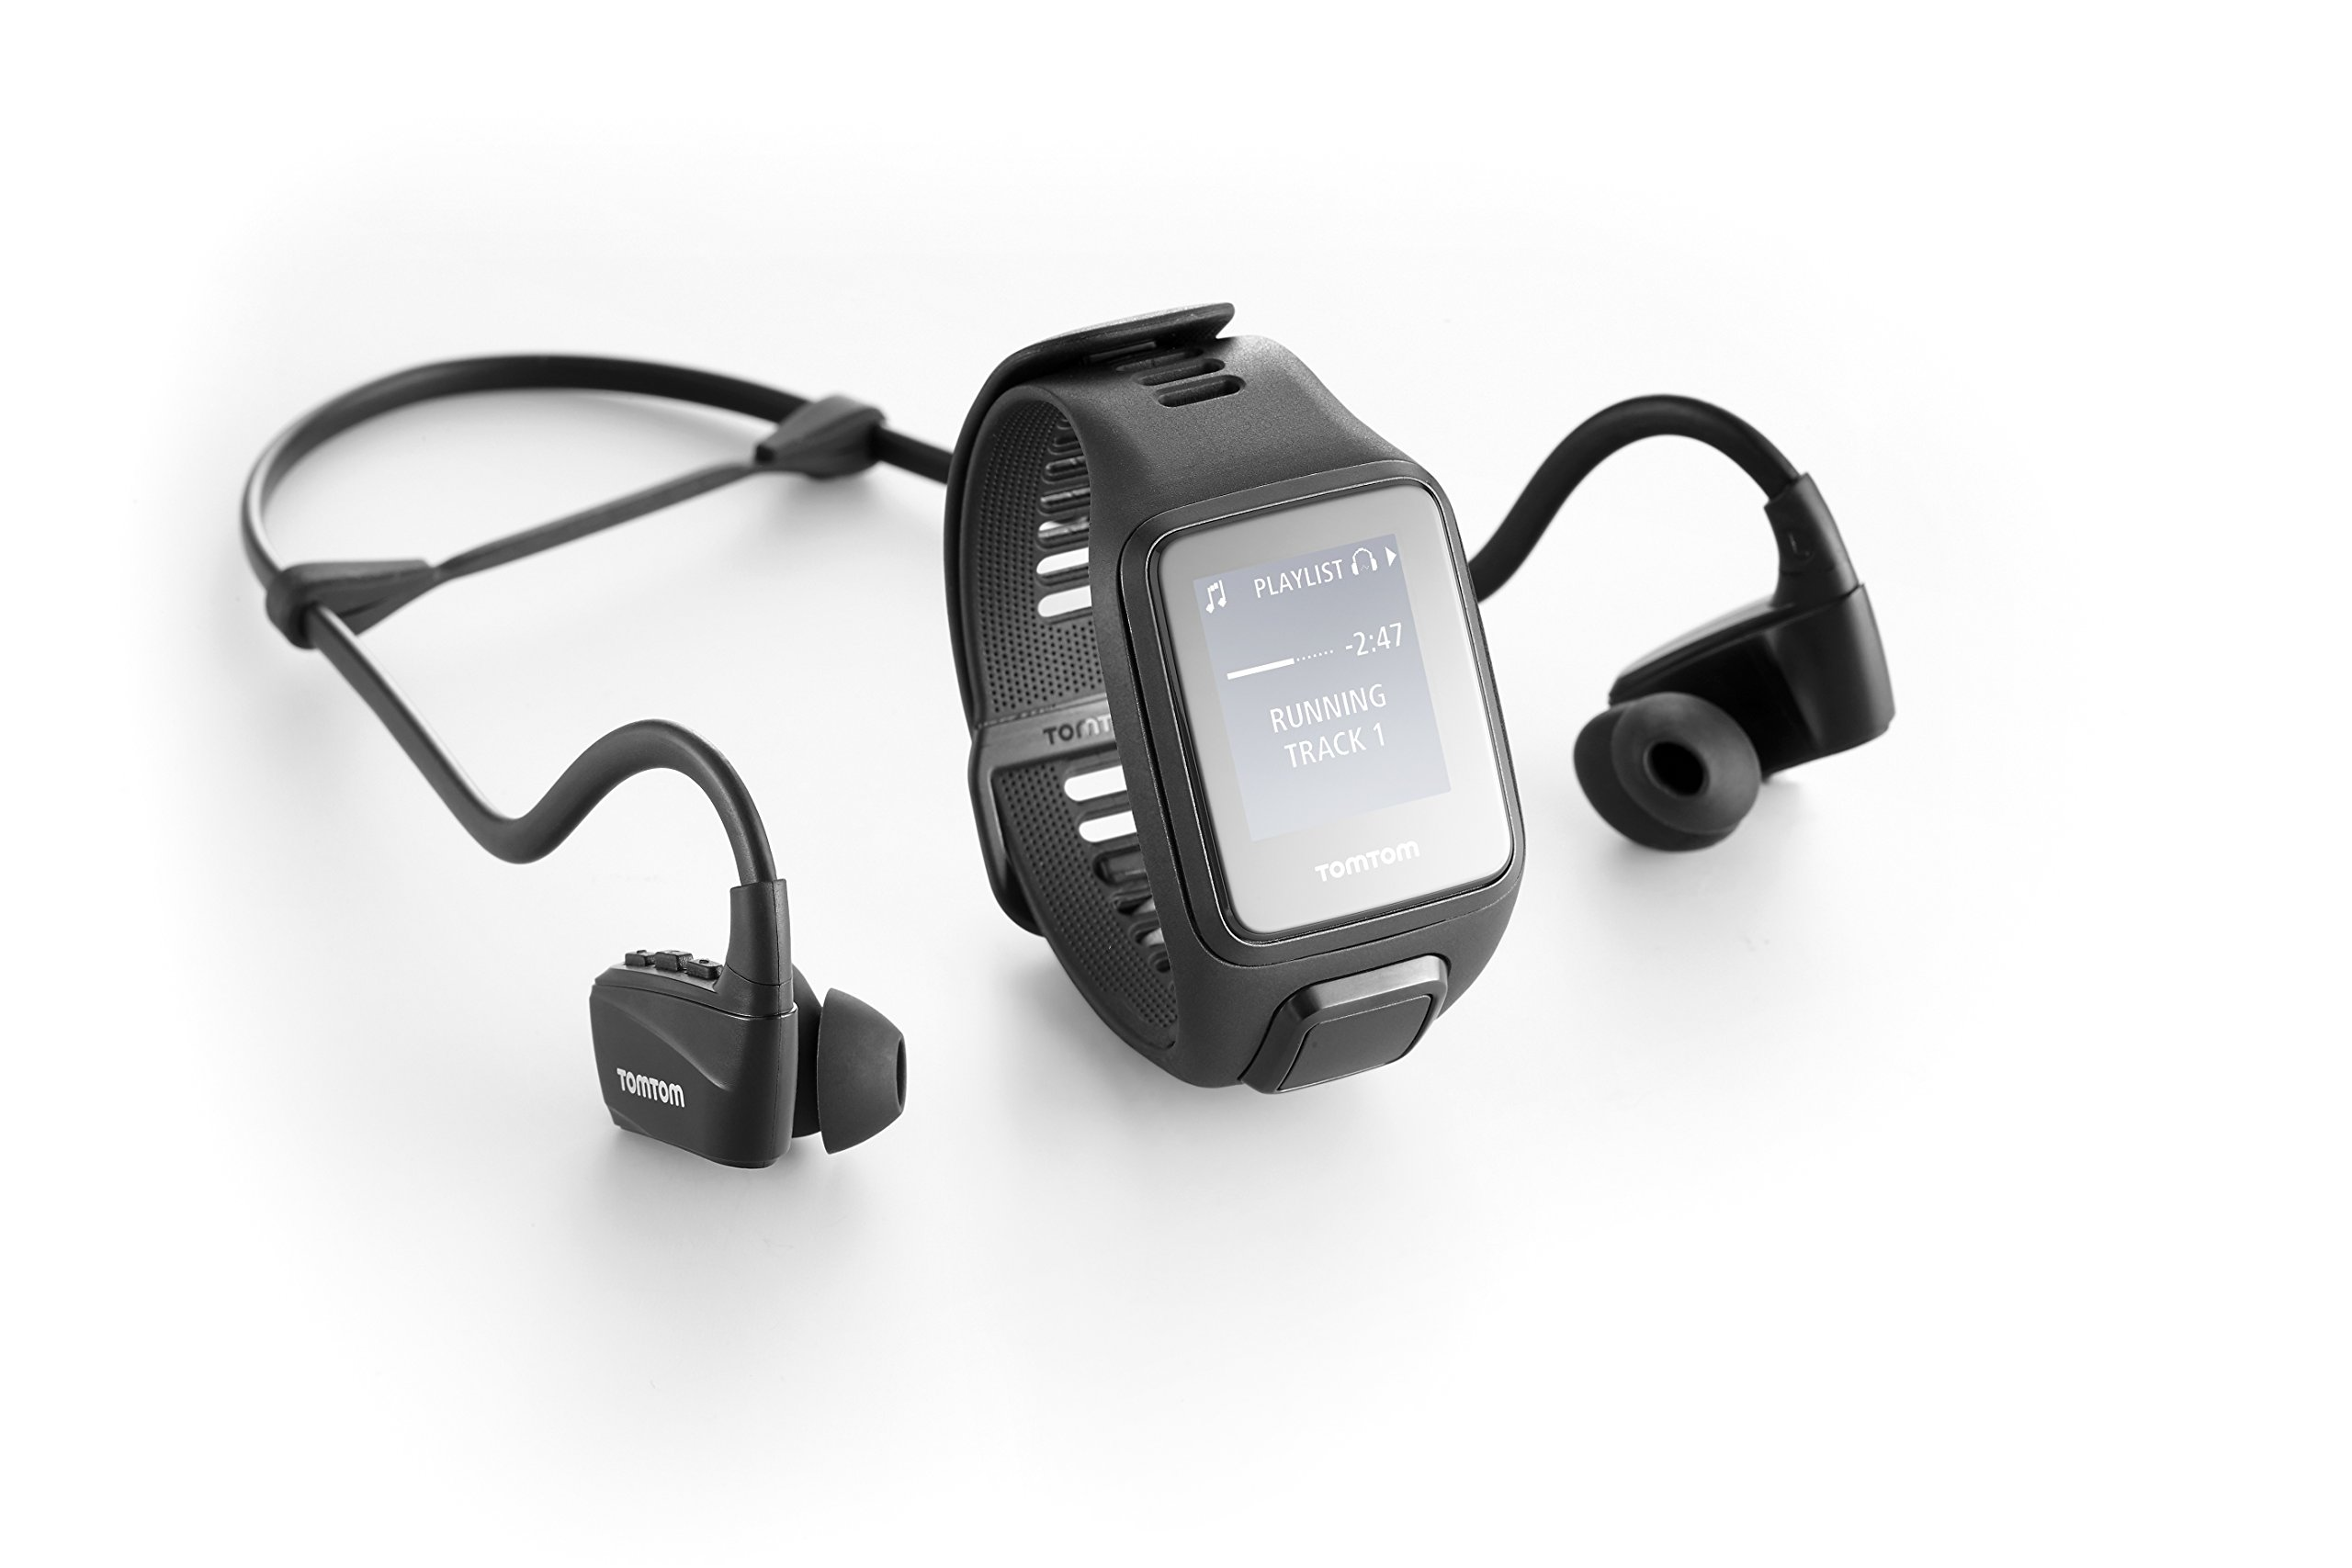 TomTom Spark 3 Cardio + Music, GPS Fitness Watch + Heart Rate Monitor + 3GB Music + Bluetooth Headphones (Black, Large) by ZHNVT (Image #2)